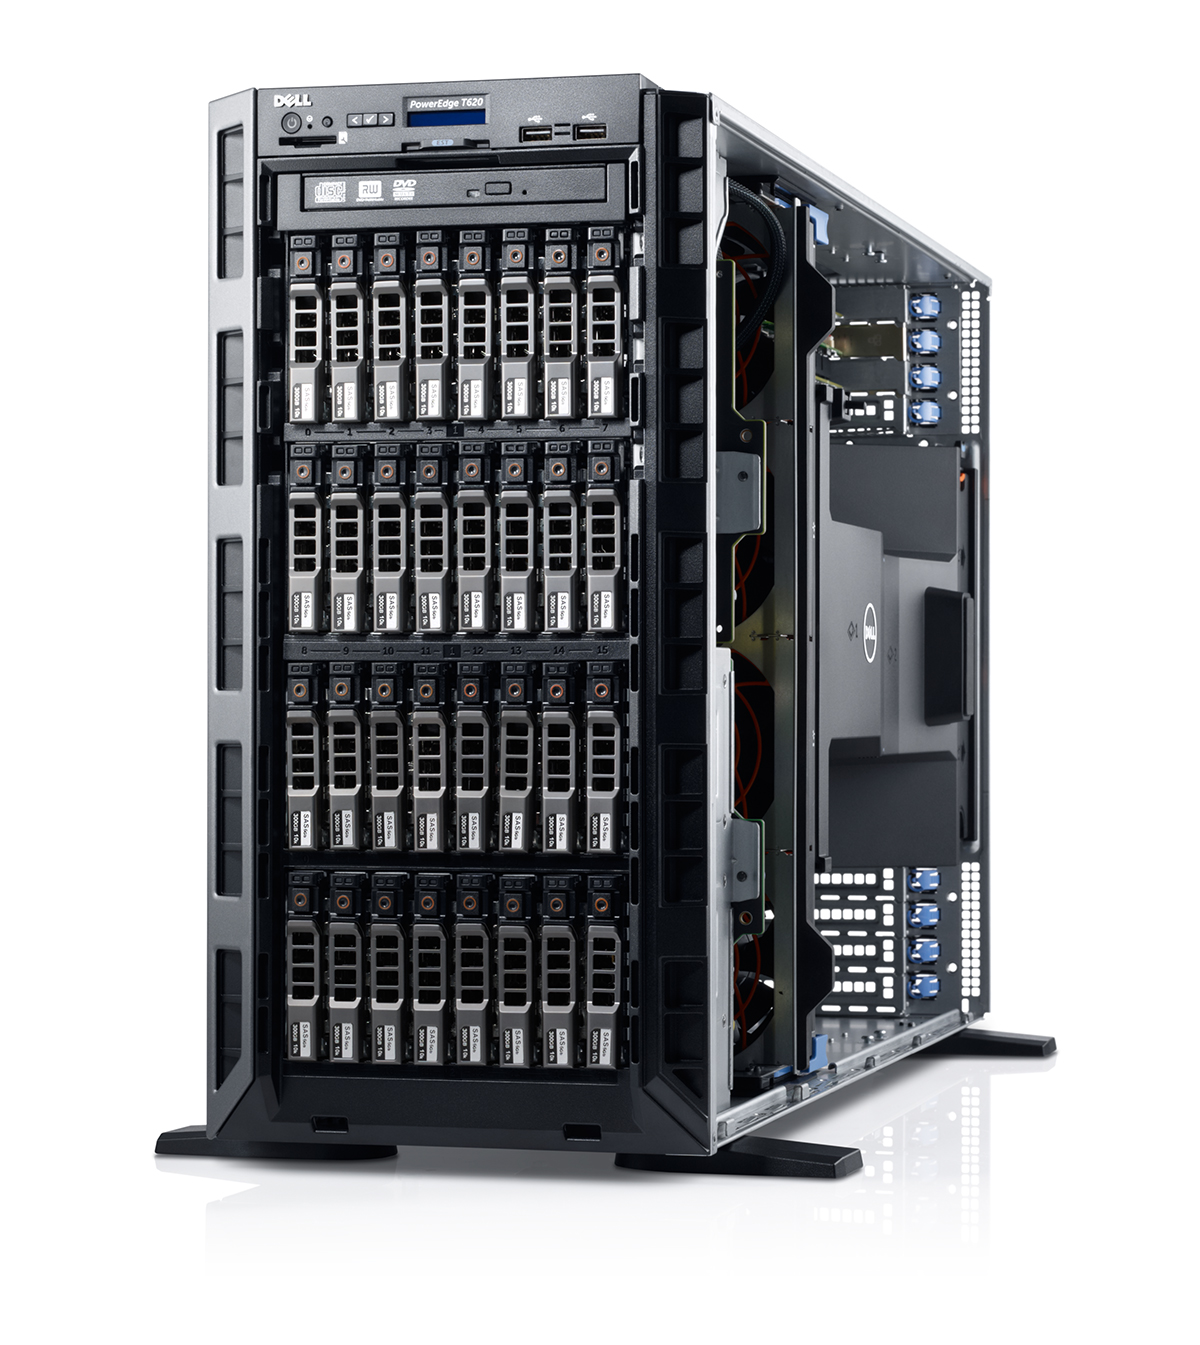 Dell PowerEdge T630 E5-2609 v4, 8GB, non-HDD 18x3.5'' hot plug, DVDRW, H730, 4x1GBE, iDRAC8 Express, 2x750W, 3 Yrs Pro